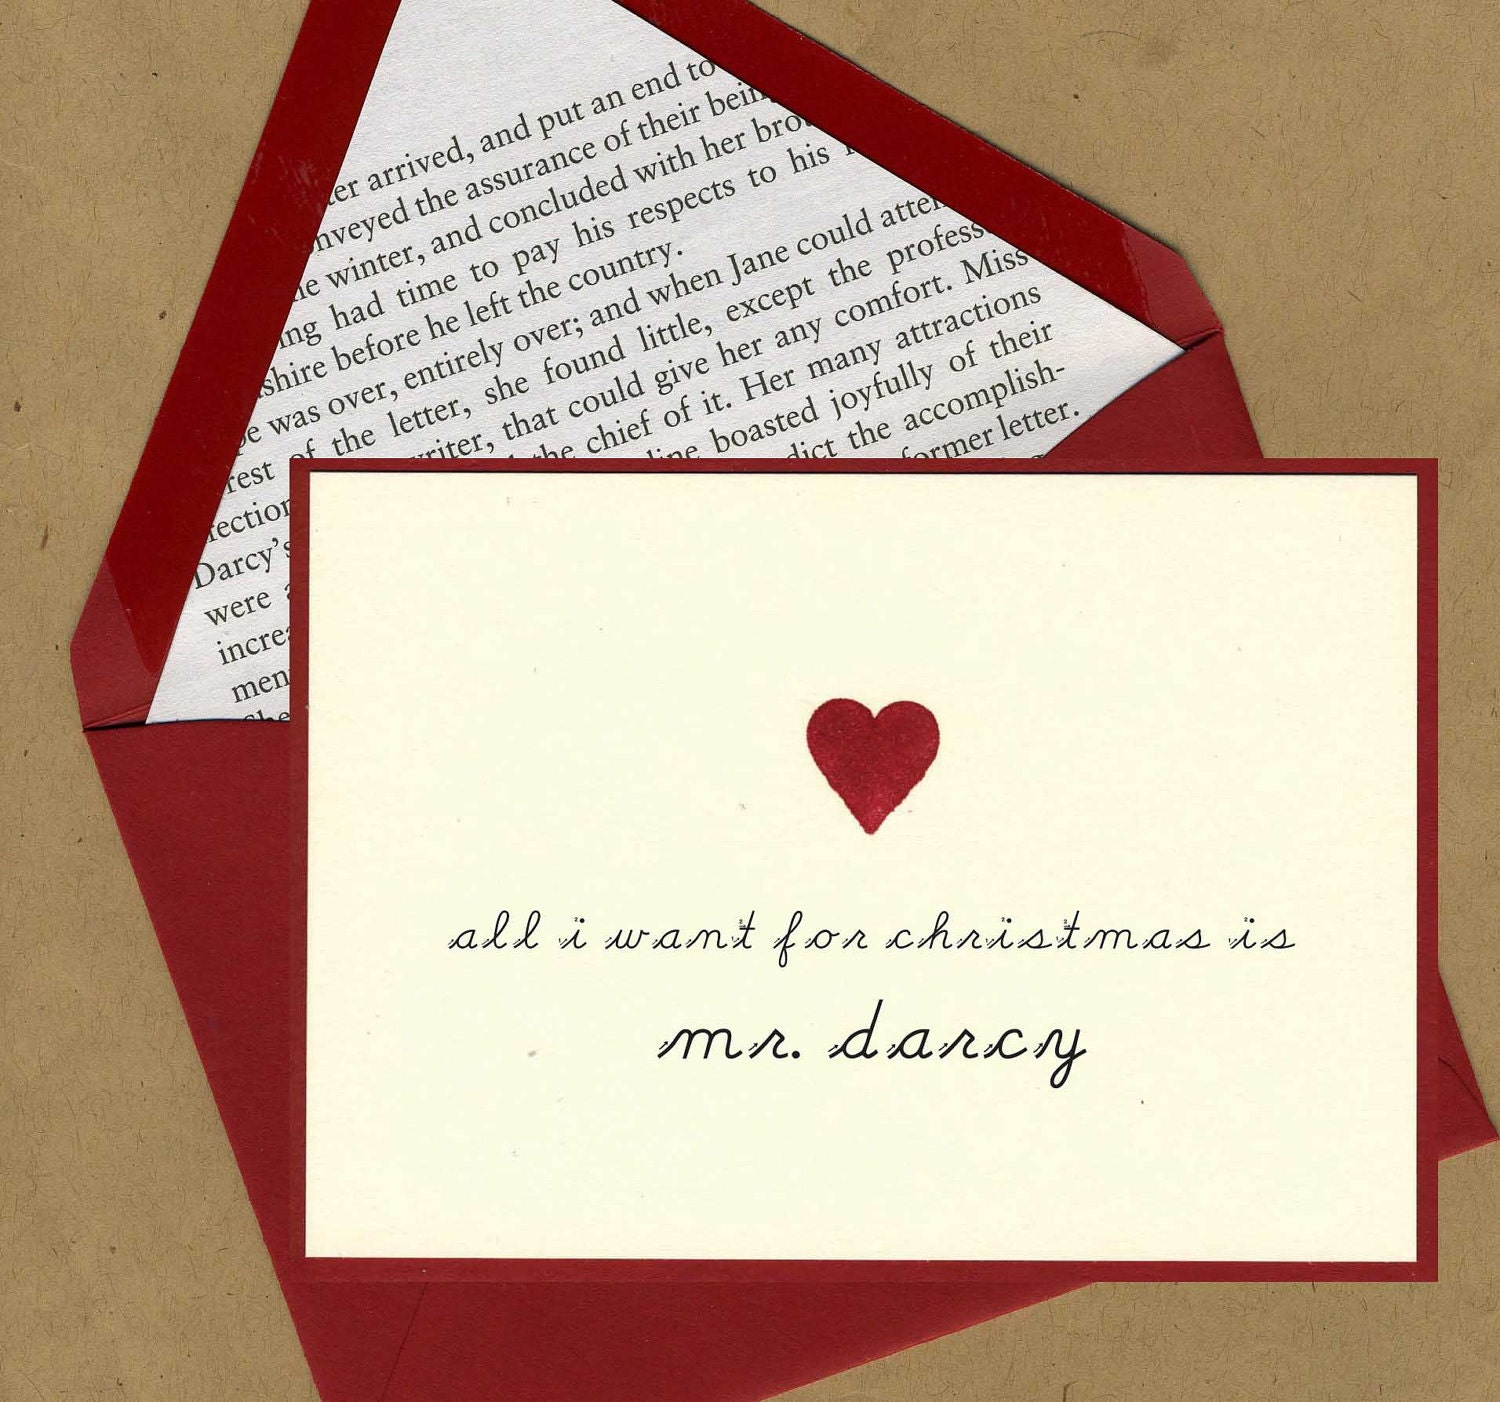 mr darcy holiday card